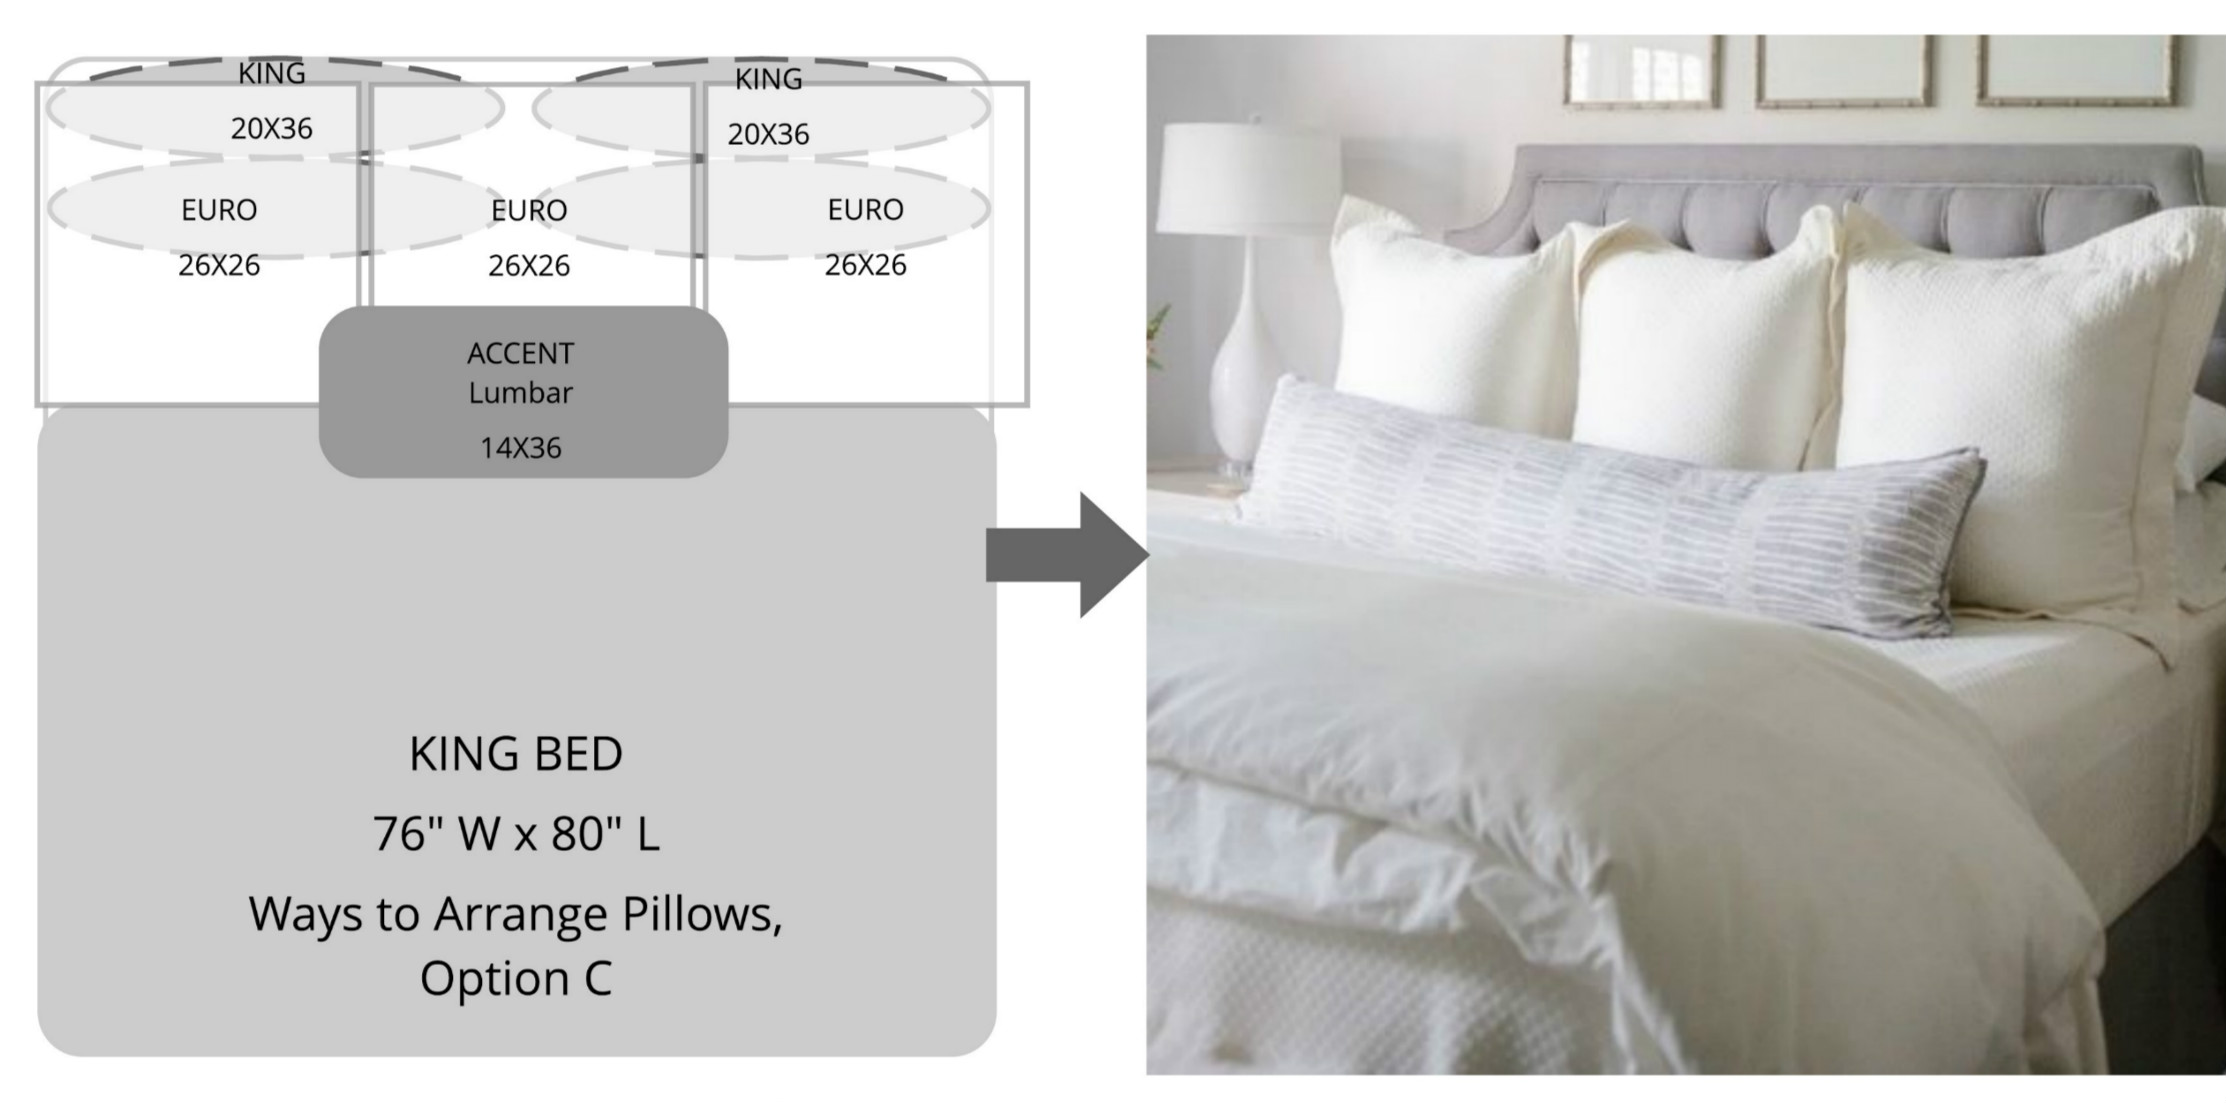 Hotel Room Types And Sizes